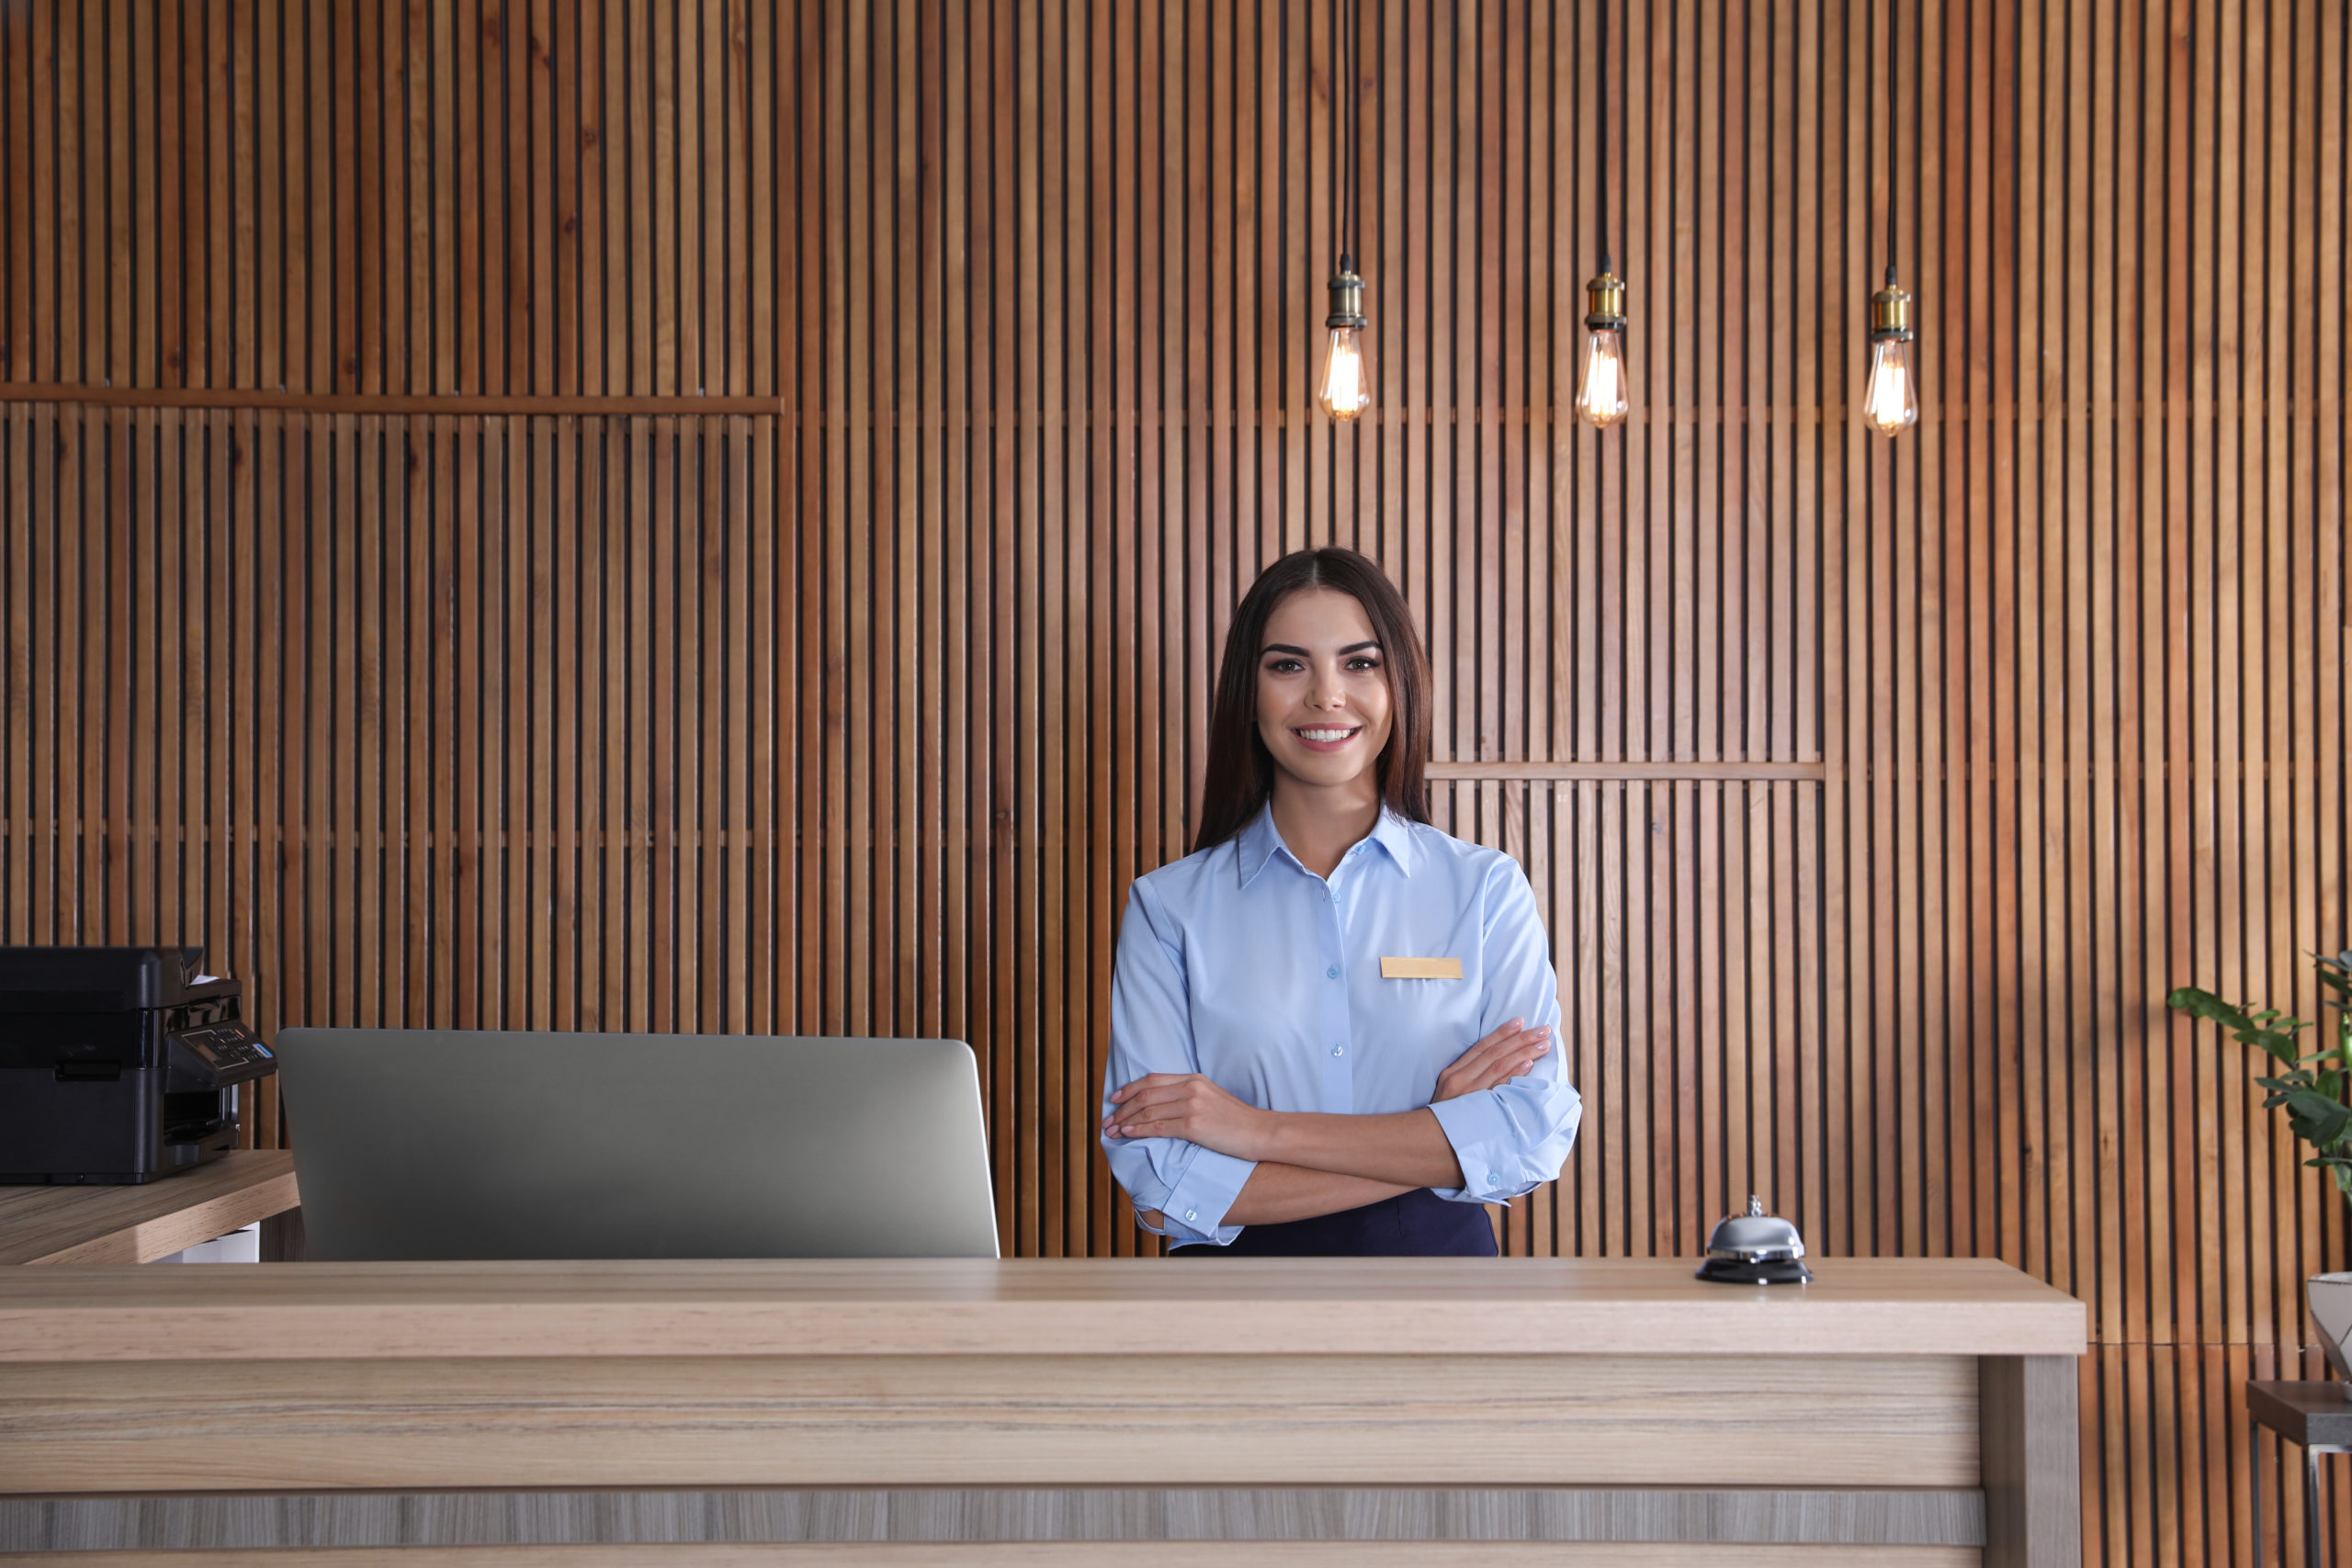 commercial-and-hospitality-Design-by-MDfx-woman-stading-at-hotel-reception-beautifully-designed-with-wooden-panel-